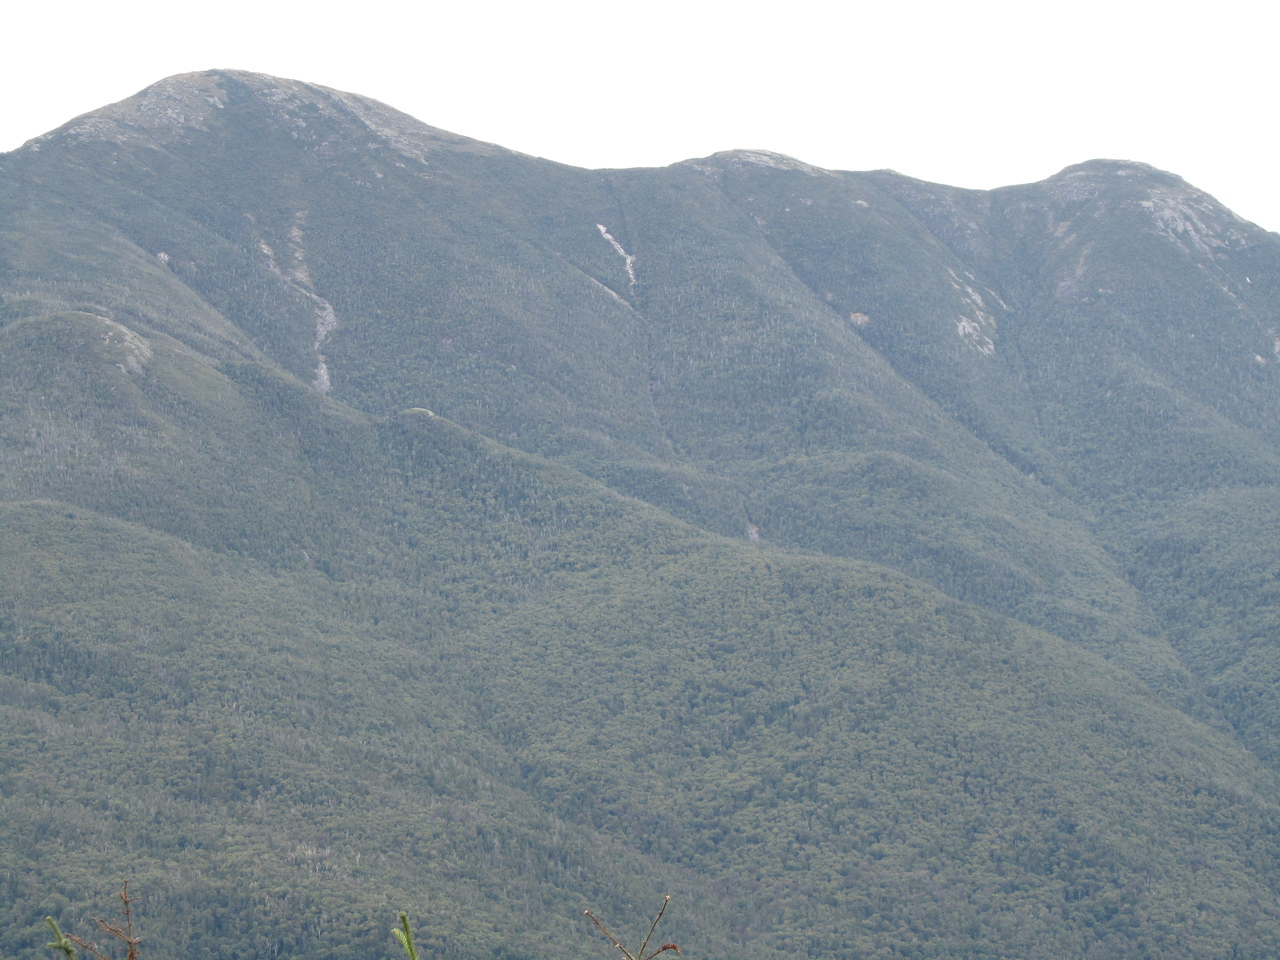 Looking across the valley and you can see little ants on the summit.